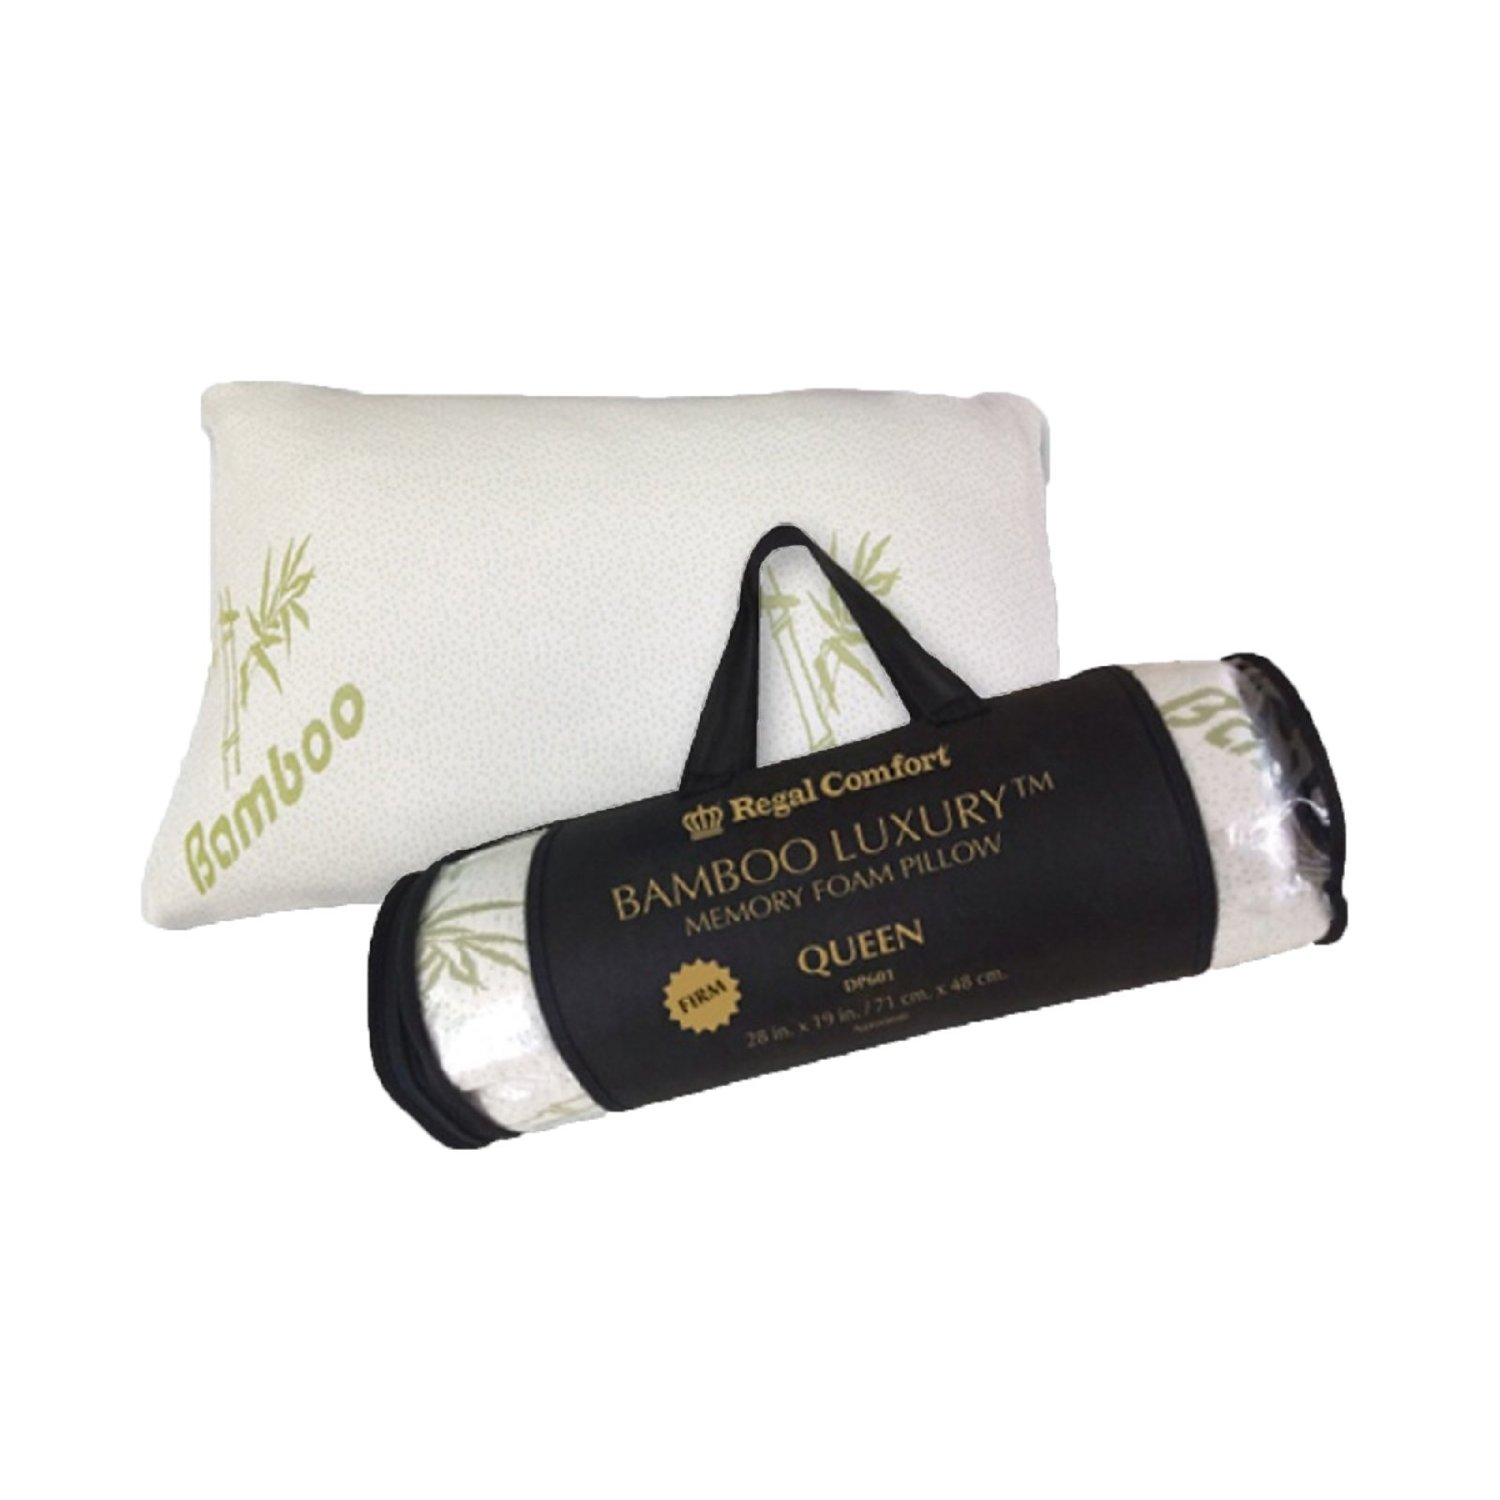 Regal Comfort Bamboo Memory Foam Bed Pillow Review.